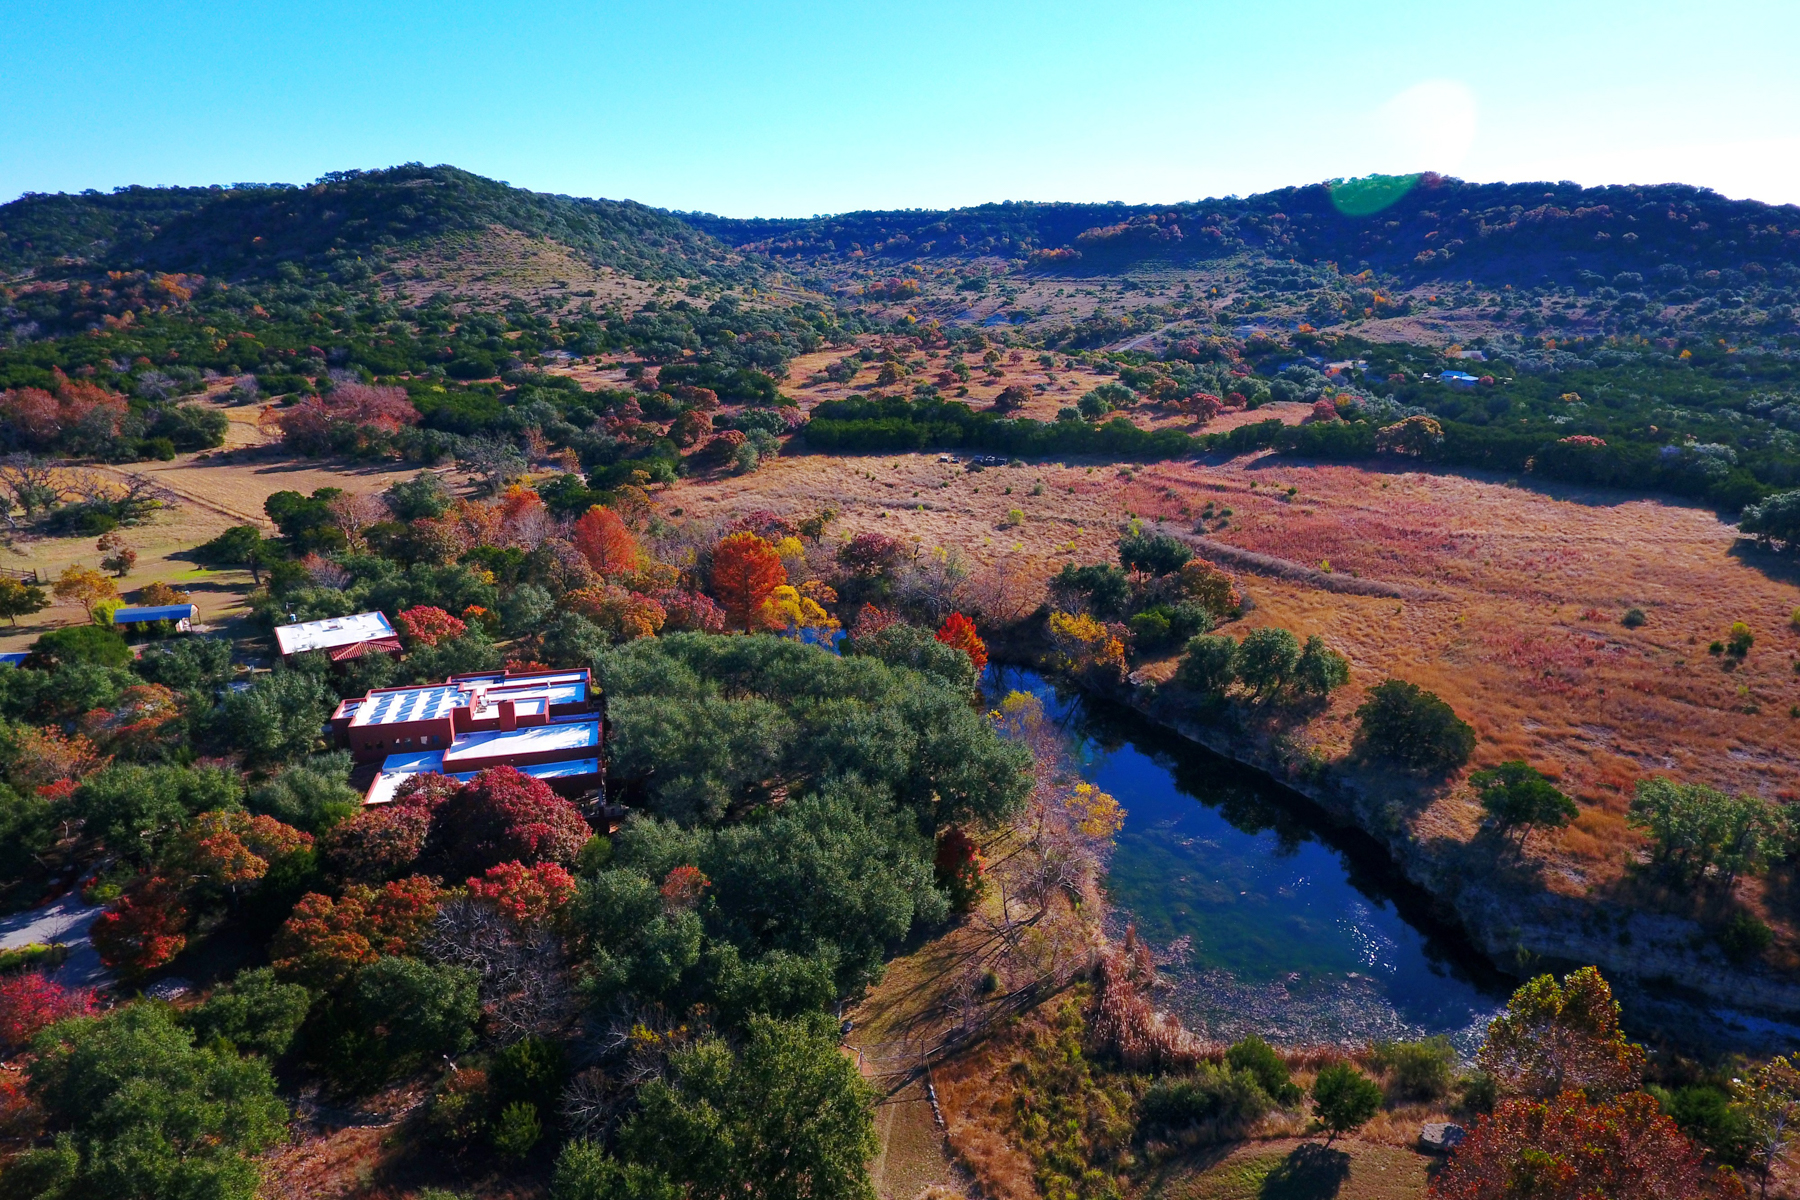 Single Family Home for Sale at Stunning Home on 150 Acres in Pipe Creek 4198 Bear Springs Rd Pipe Creek, Texas 78063 United States